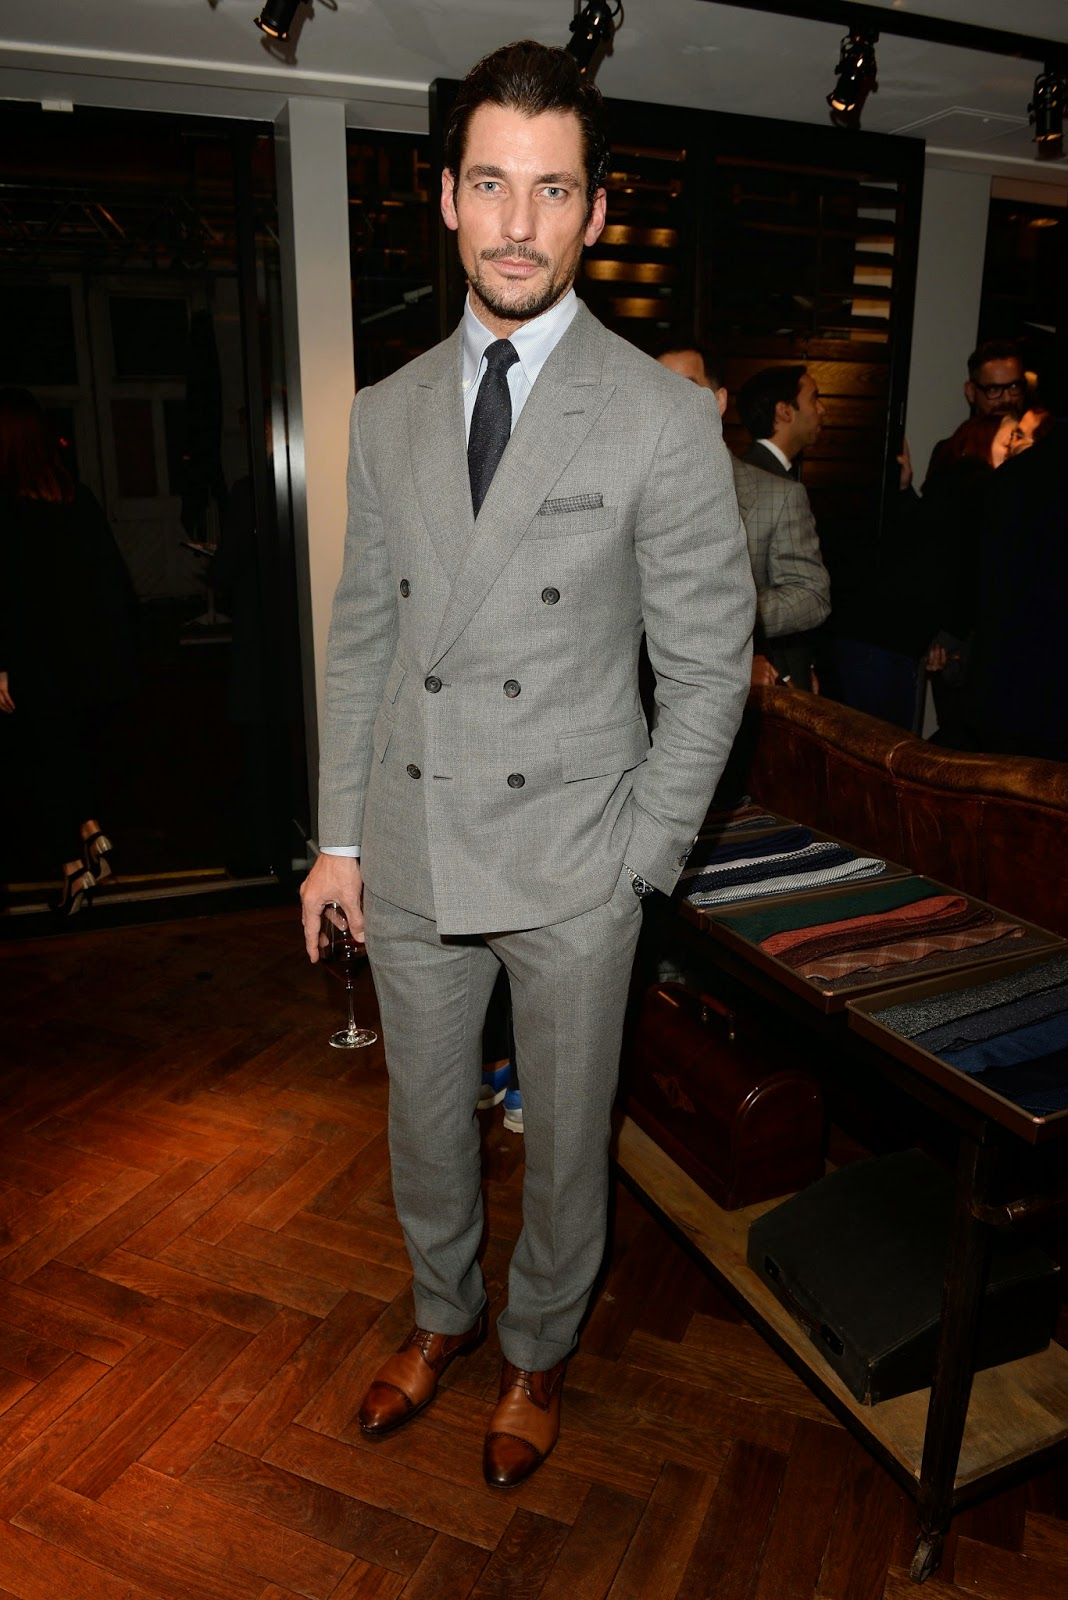 David Gandy, Matt Smith, Jamie Redknapp & Robert Konjic  Wore Thom Sweeney to attend the Opening Of The New Thom Sweeney Ready to Wear & Made to Measure Store on November 13, 2014 in London, England